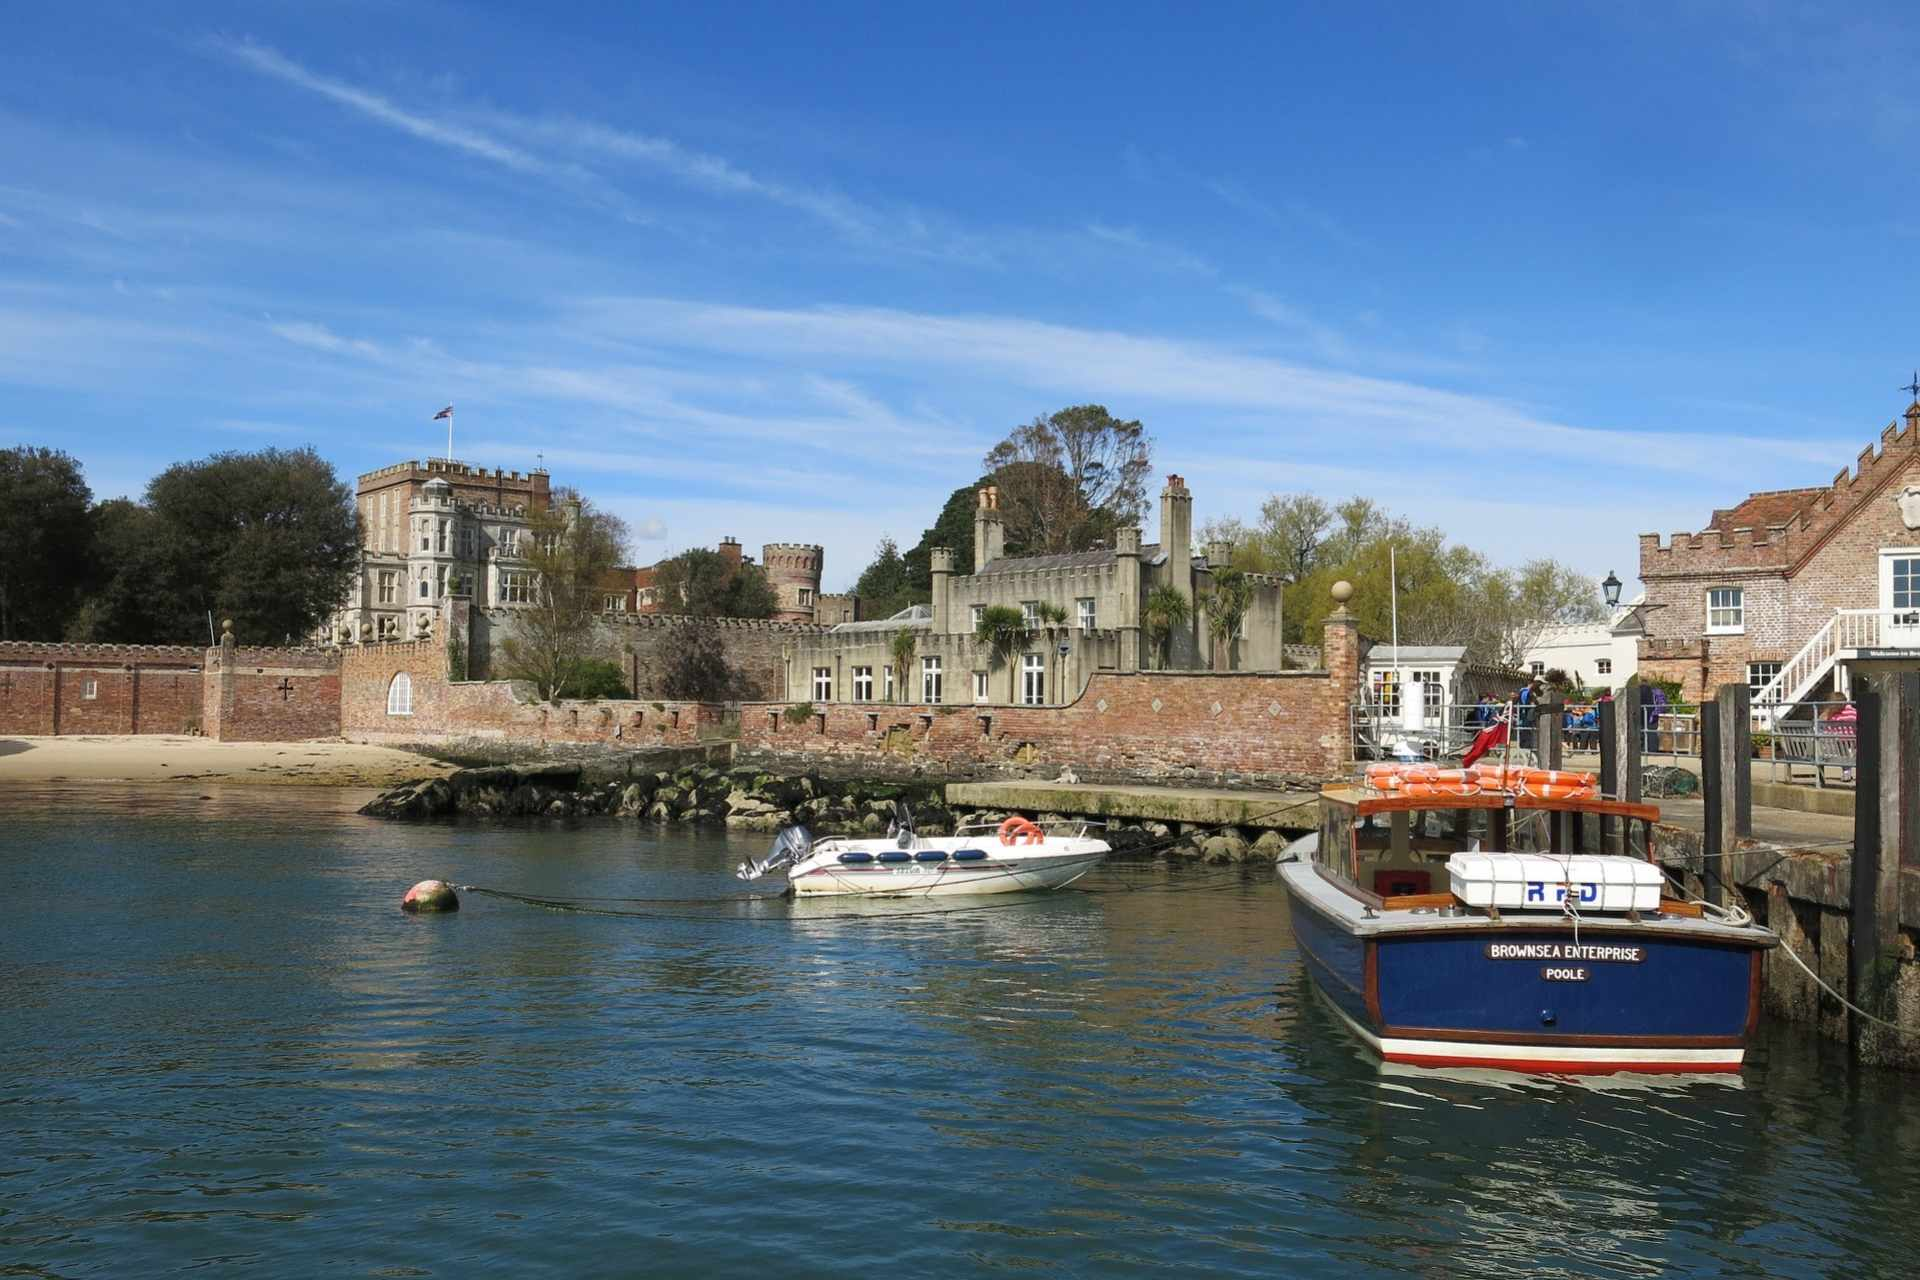 brownsea-island-castle-by-harbour-on-sunny-day-with-blue-skies